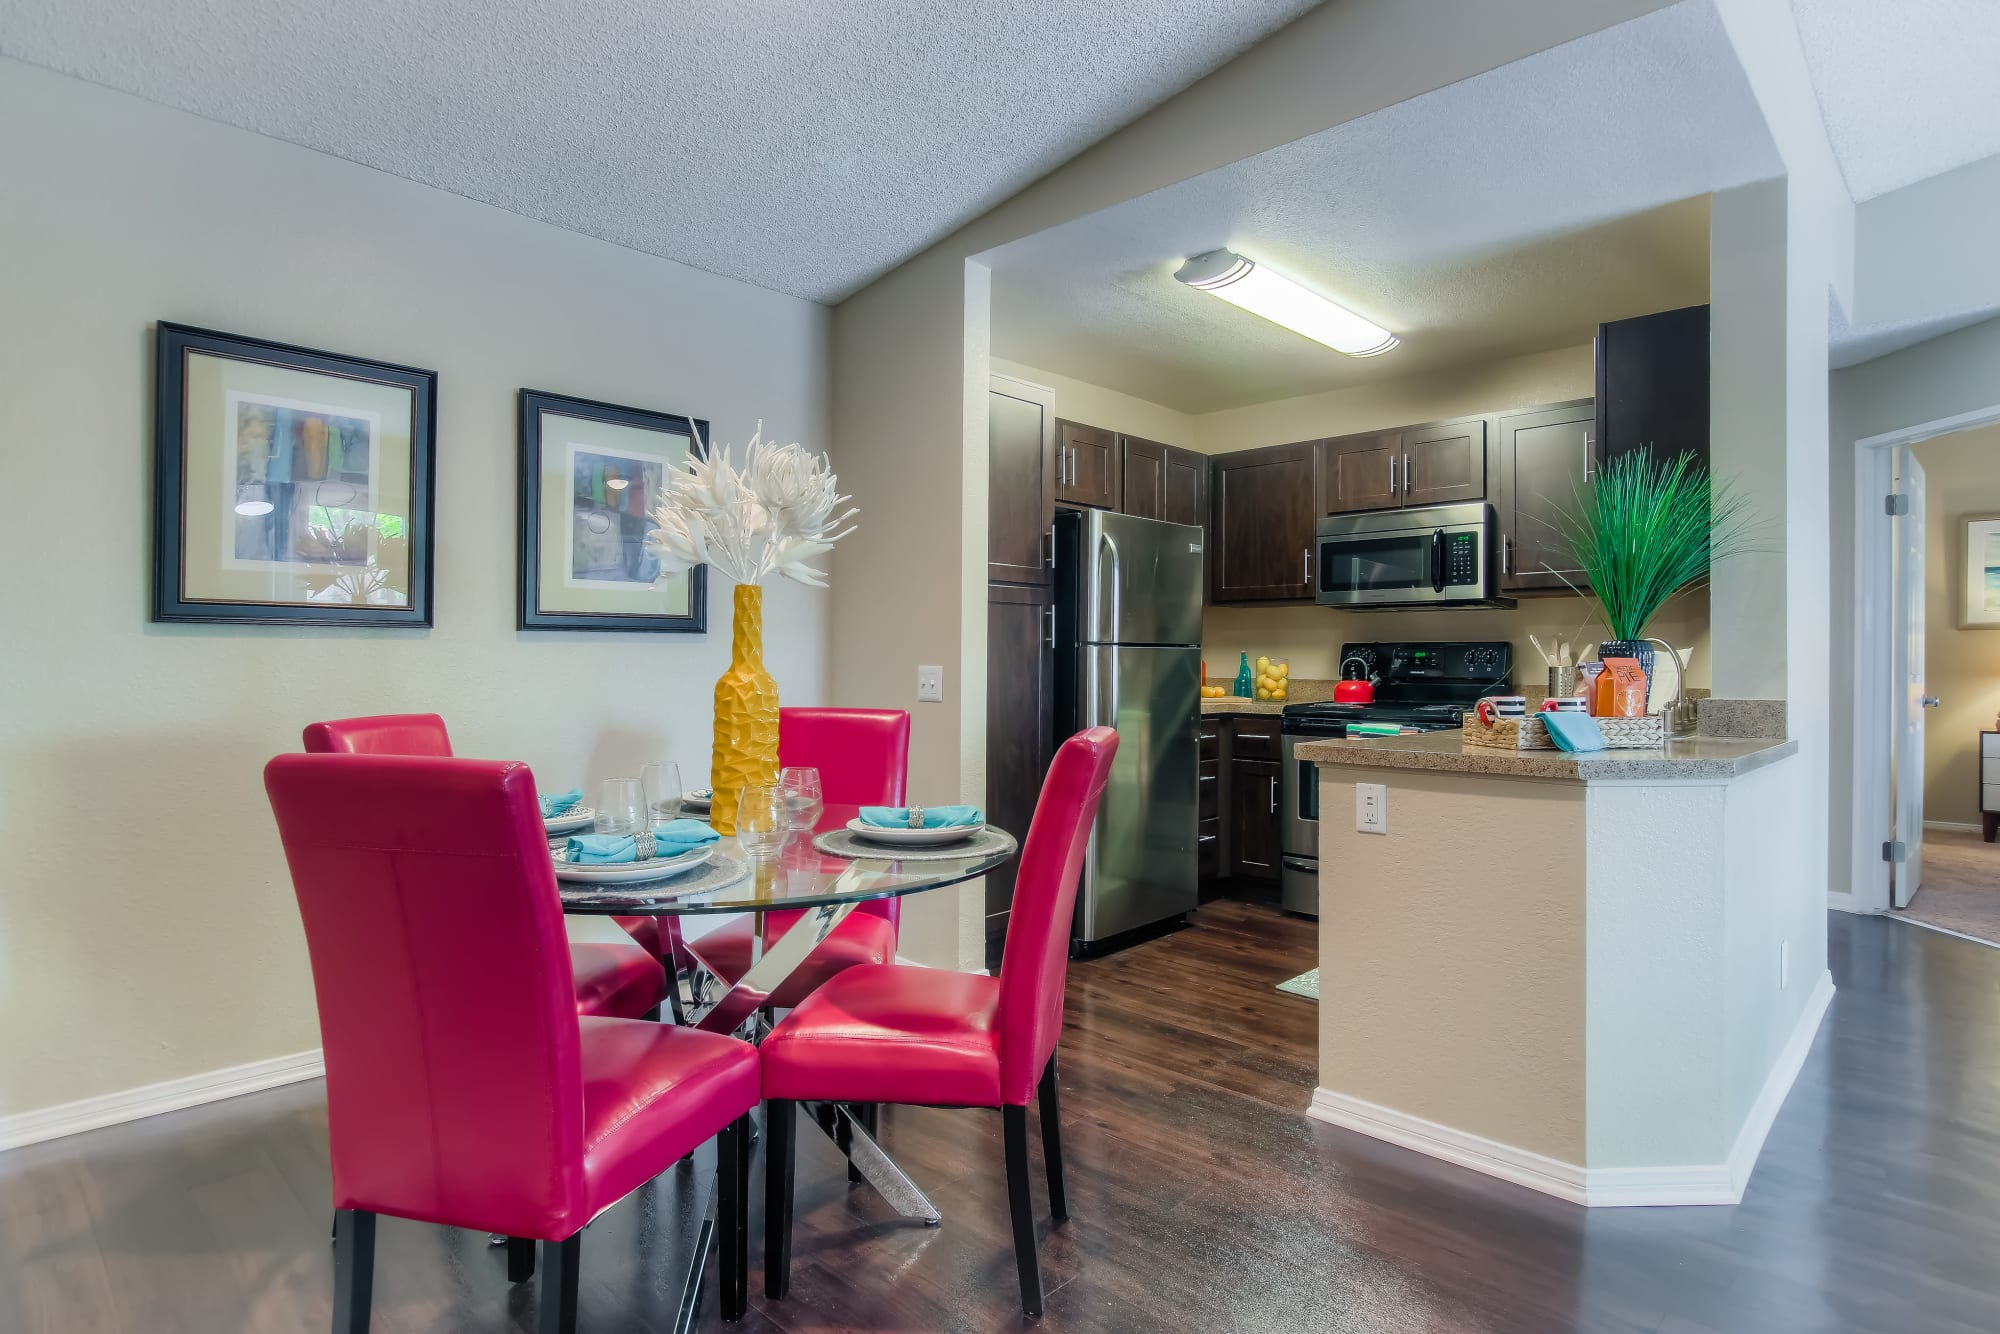 Dining room and kitchen view At Tuscany Village Apartments